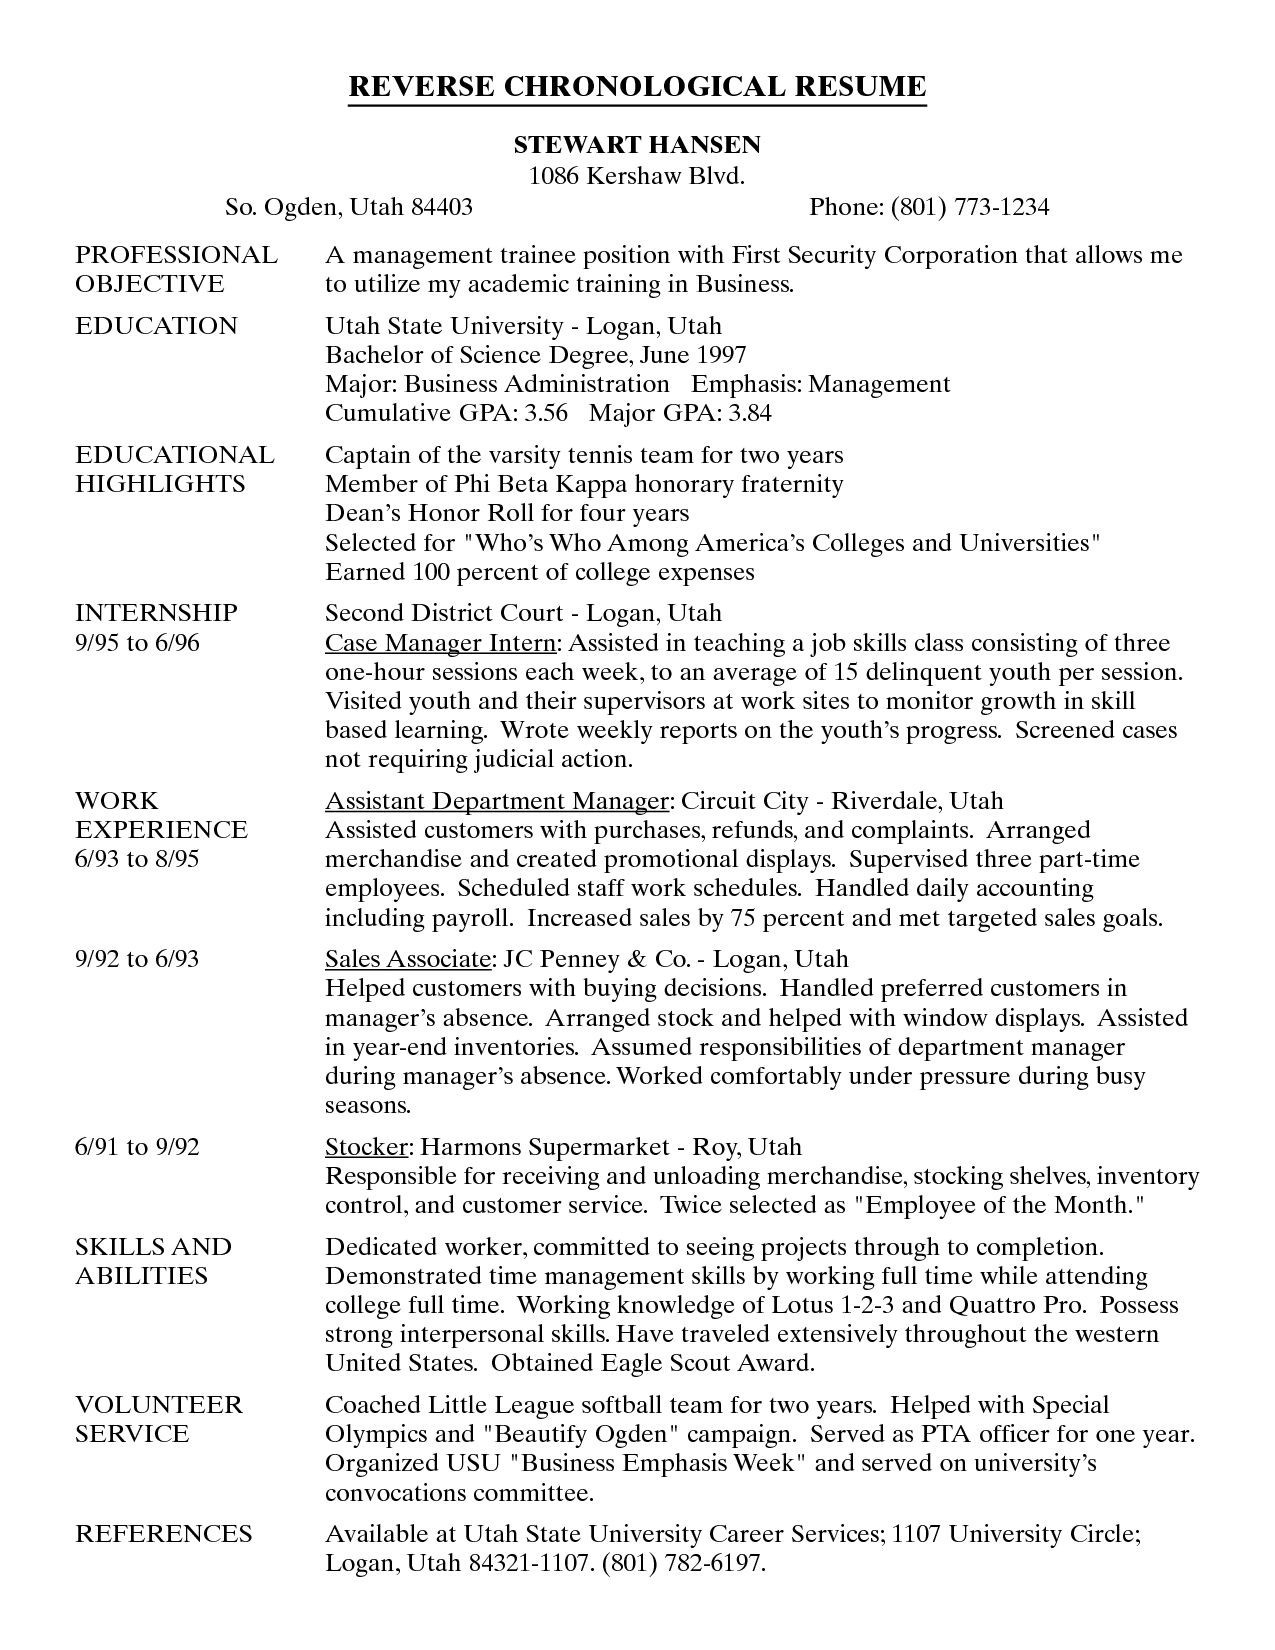 Reverse Chronological Resume - Reverse Chronological order Resume